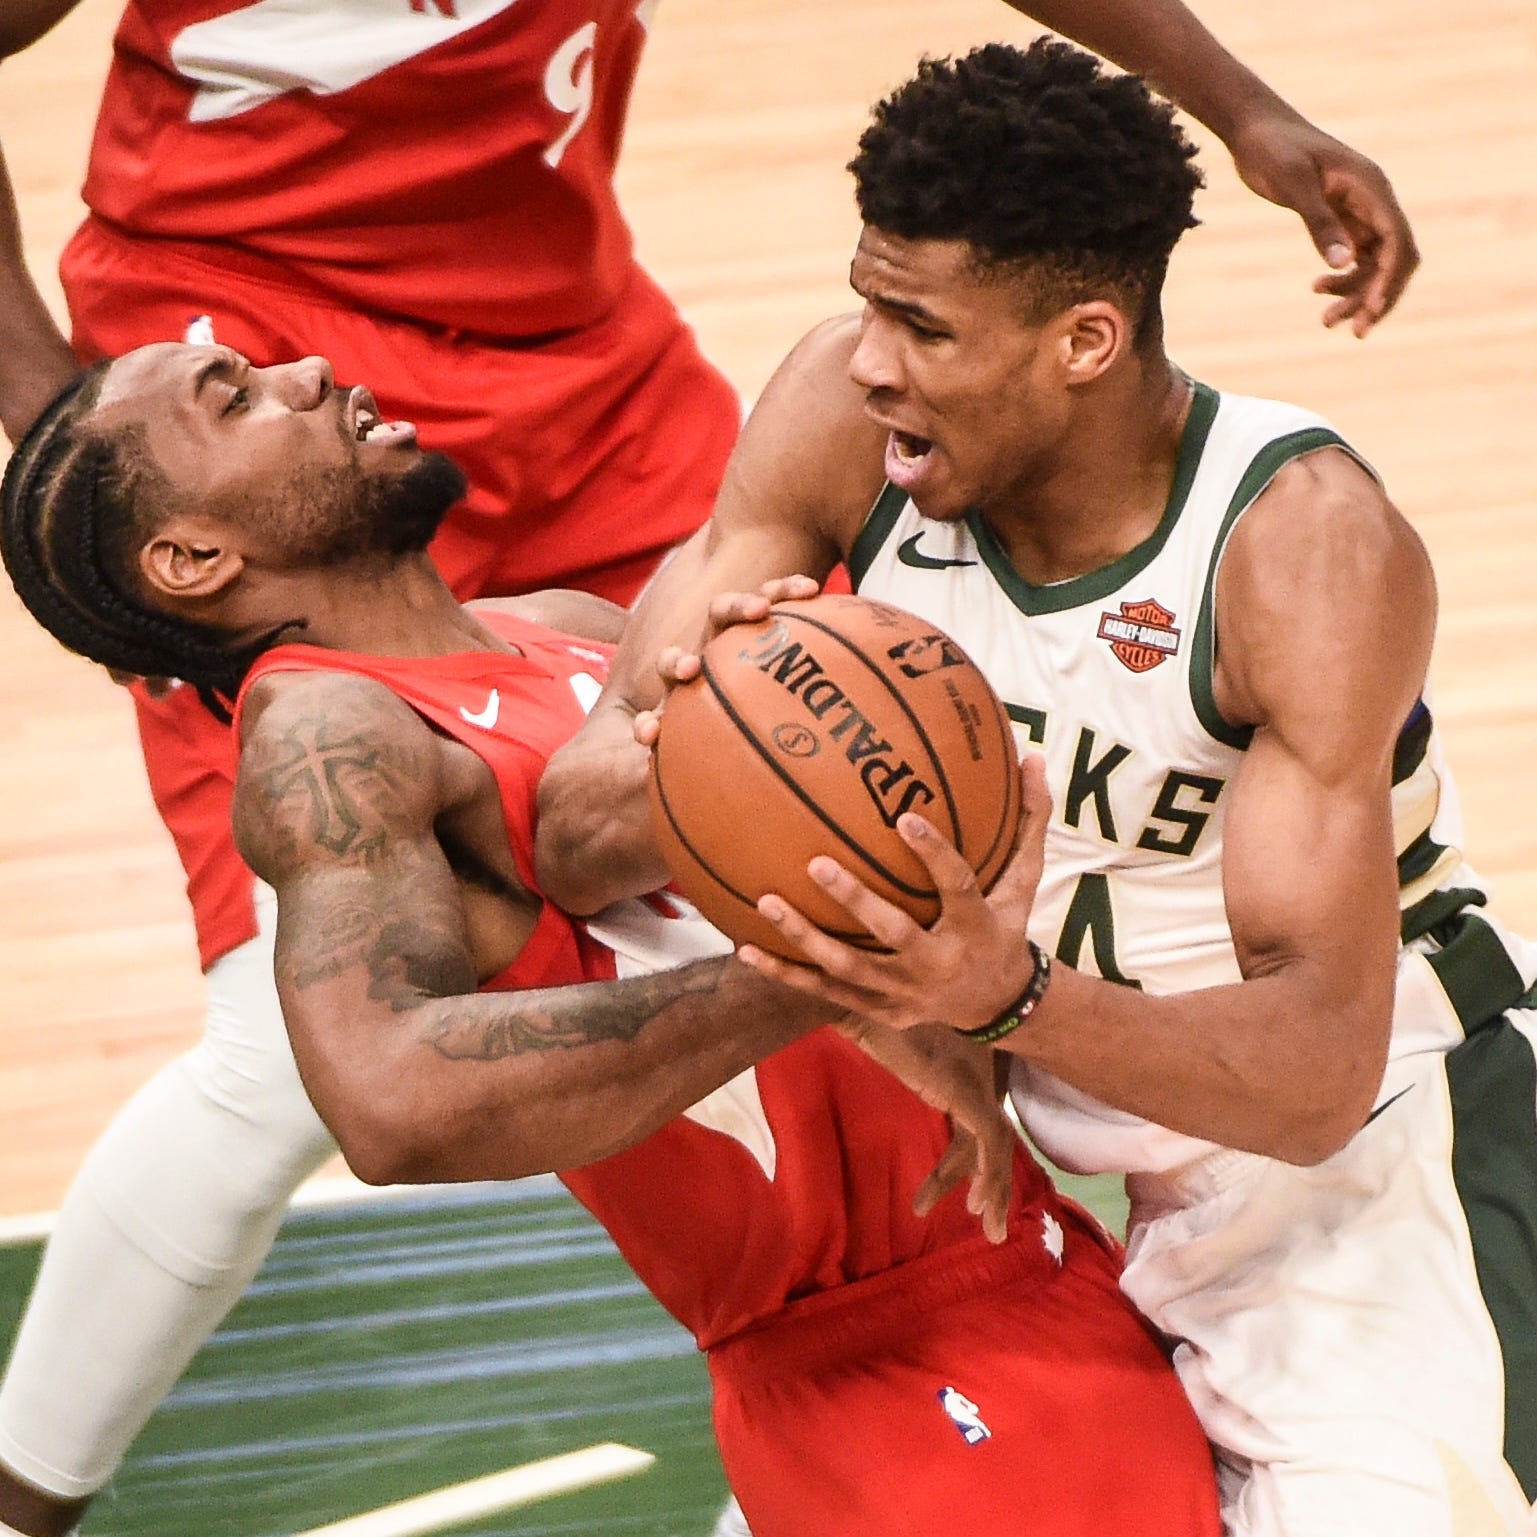 Kawhi Leonard's dominating play in Eastern Conference finals outshines Giannis' stardom